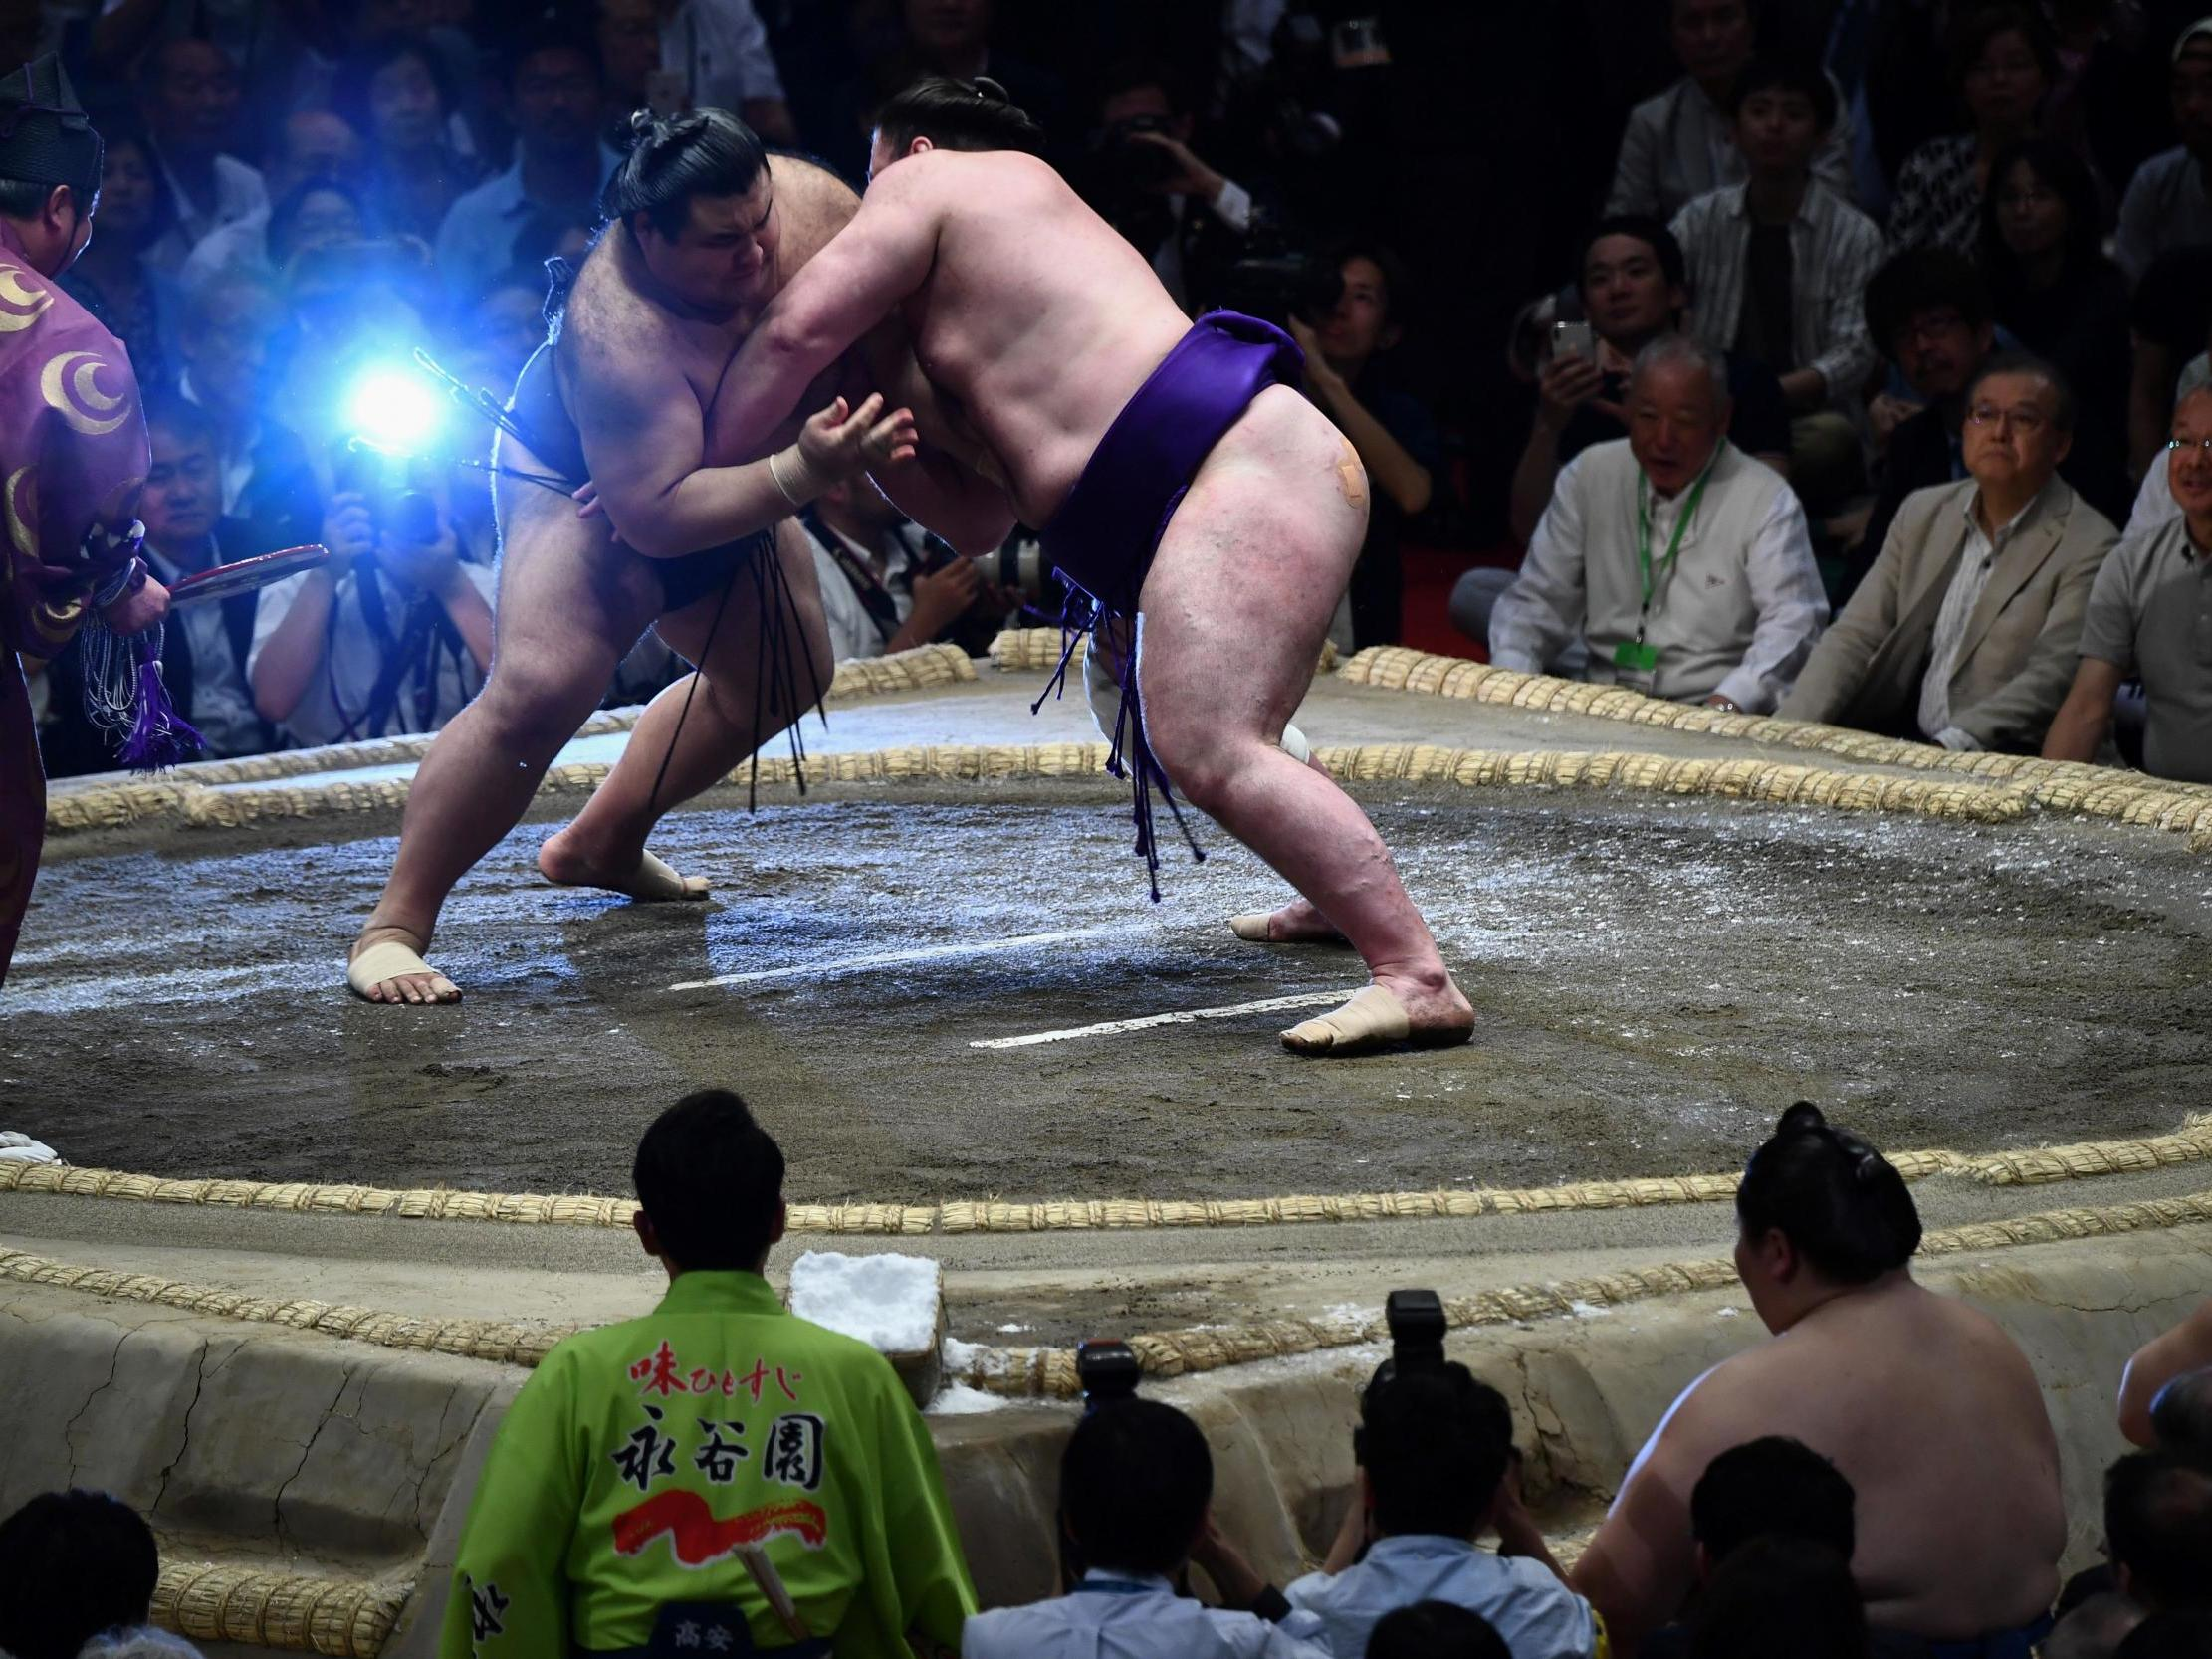 Violence, corruption and concussion: The dark side to sumo wrestling – and why its popularity endures